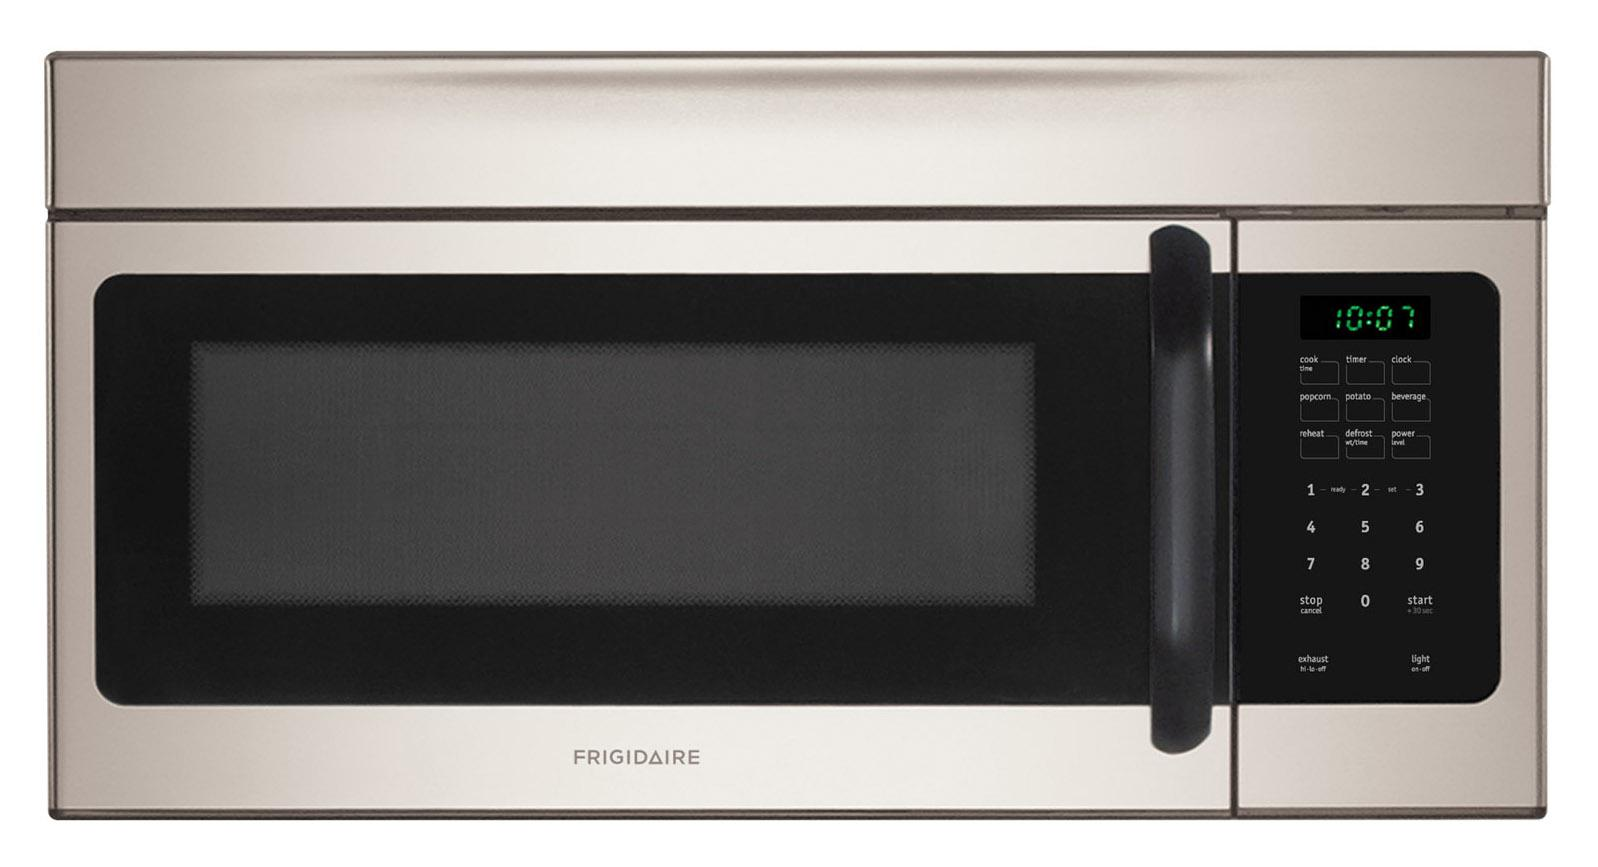 Frigidaire Microwaves 1.6 Cu. Ft. Over-The-Range Microwave - Item Number: FFMV162LM